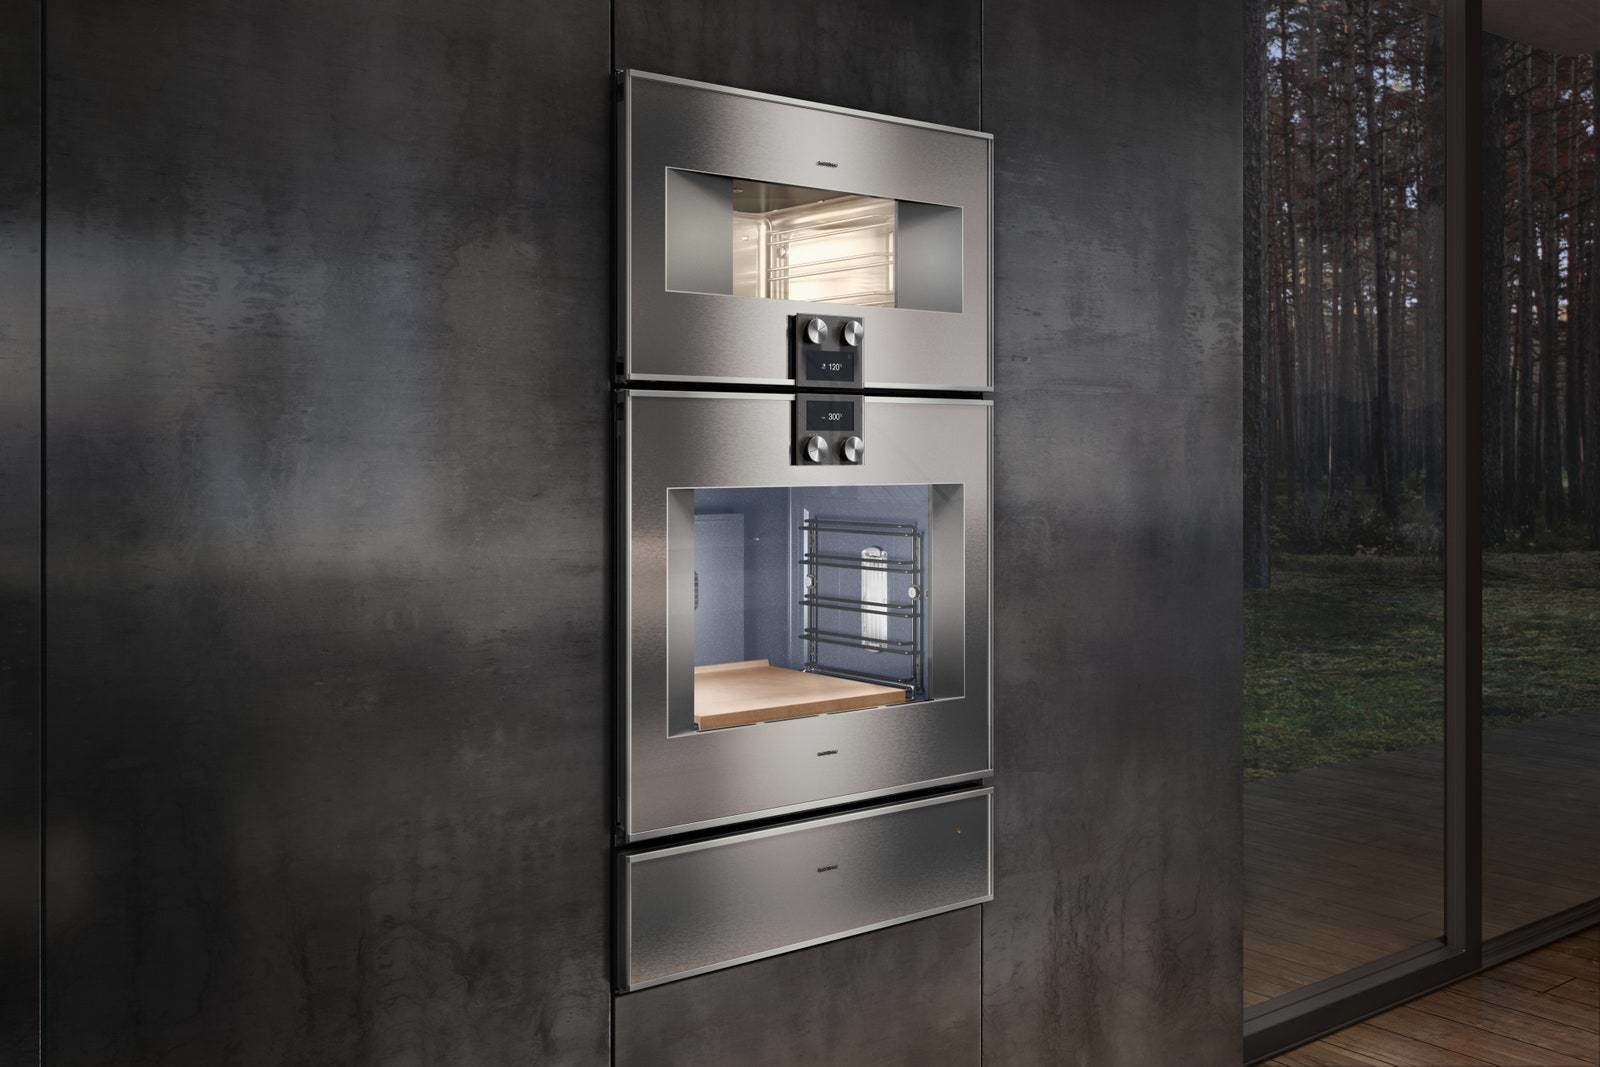 Gaggenau Combi-Steam Oven 400 Series  Photo 2 of 10 in Trend Report: The Internet Settles Into Our Appliances